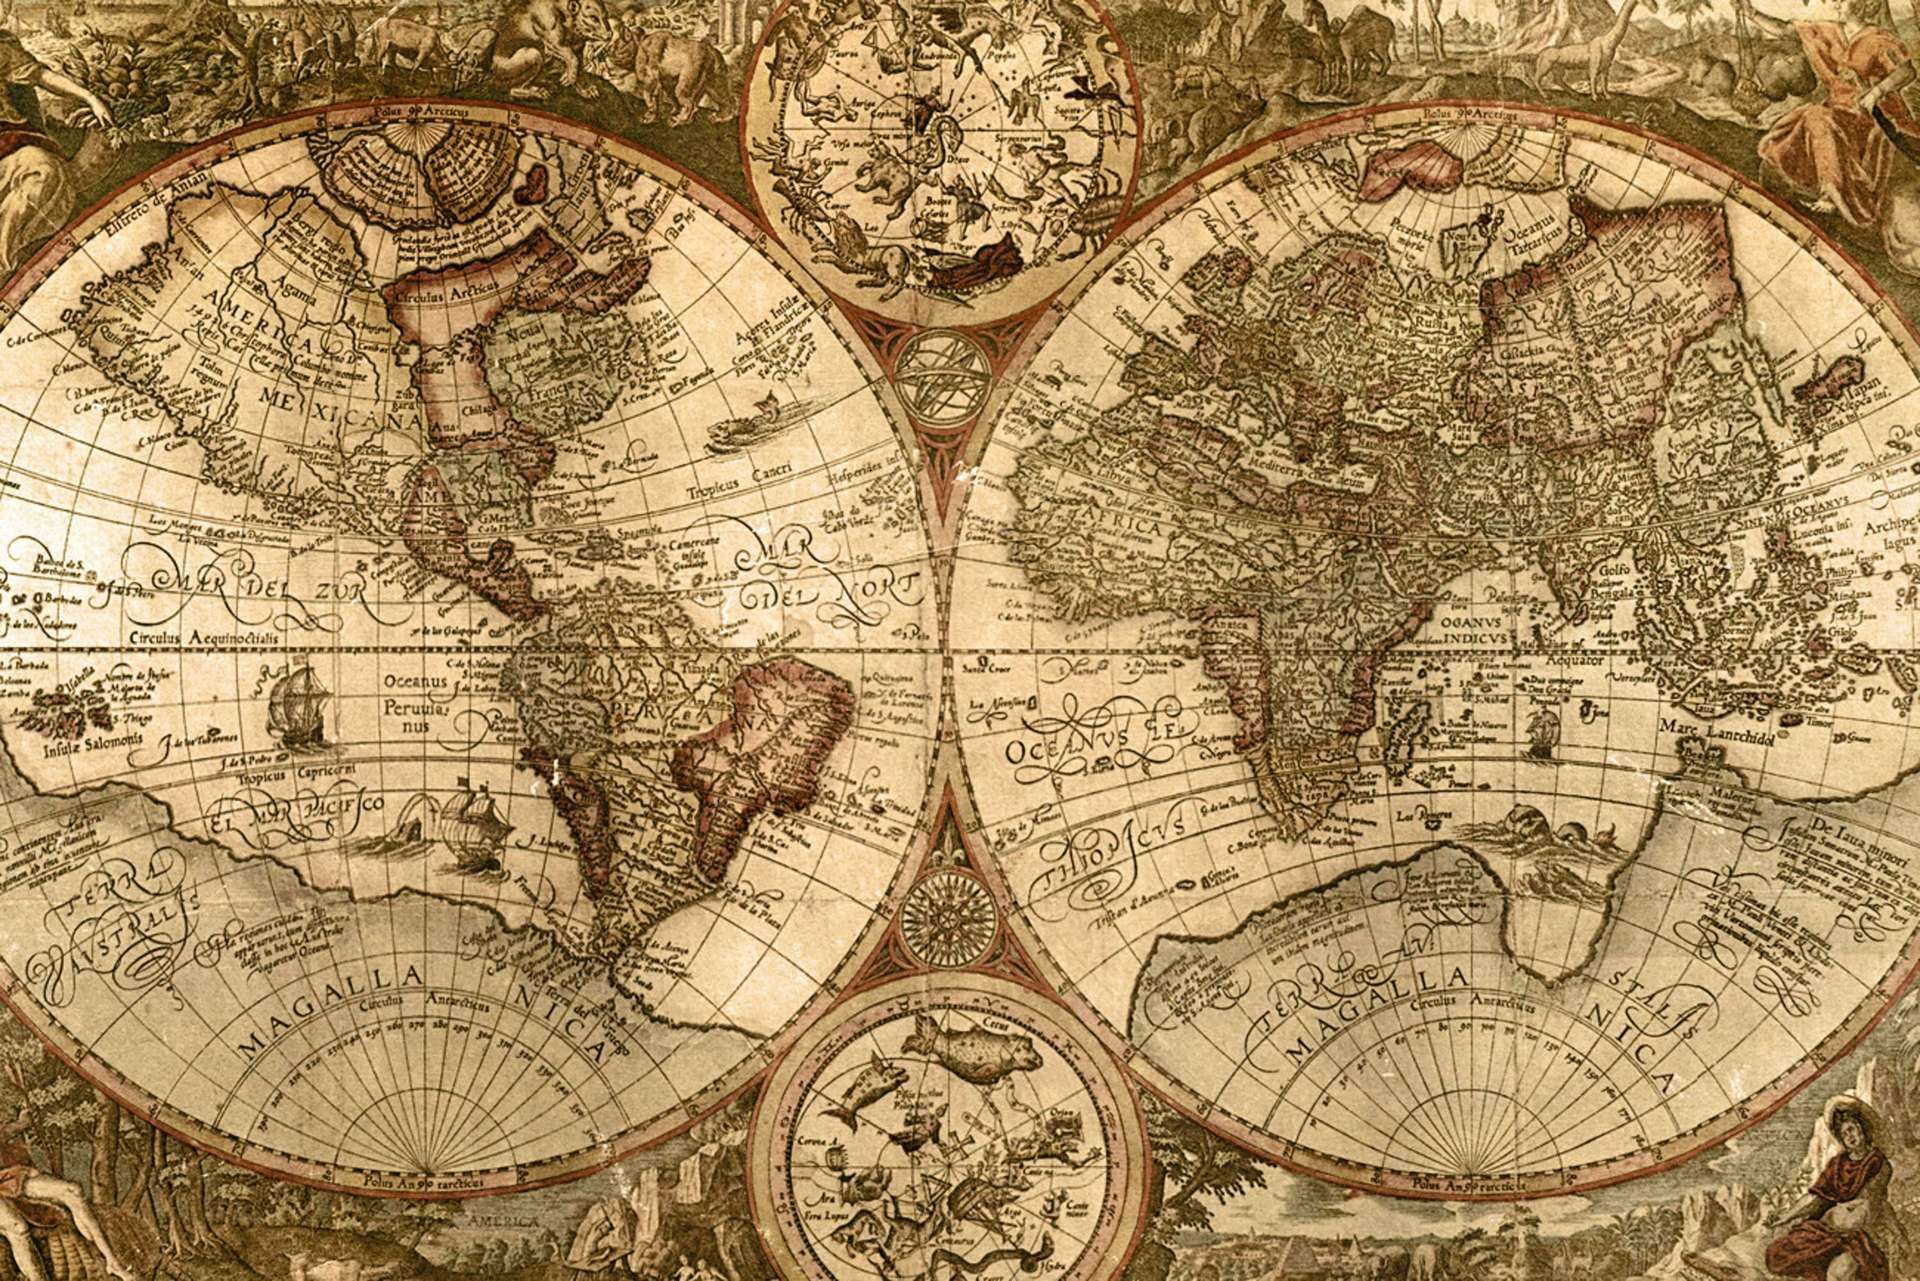 X1920ancientwallpapers483g 19201281 antique world map you want old world maps gumiabroncs Image collections